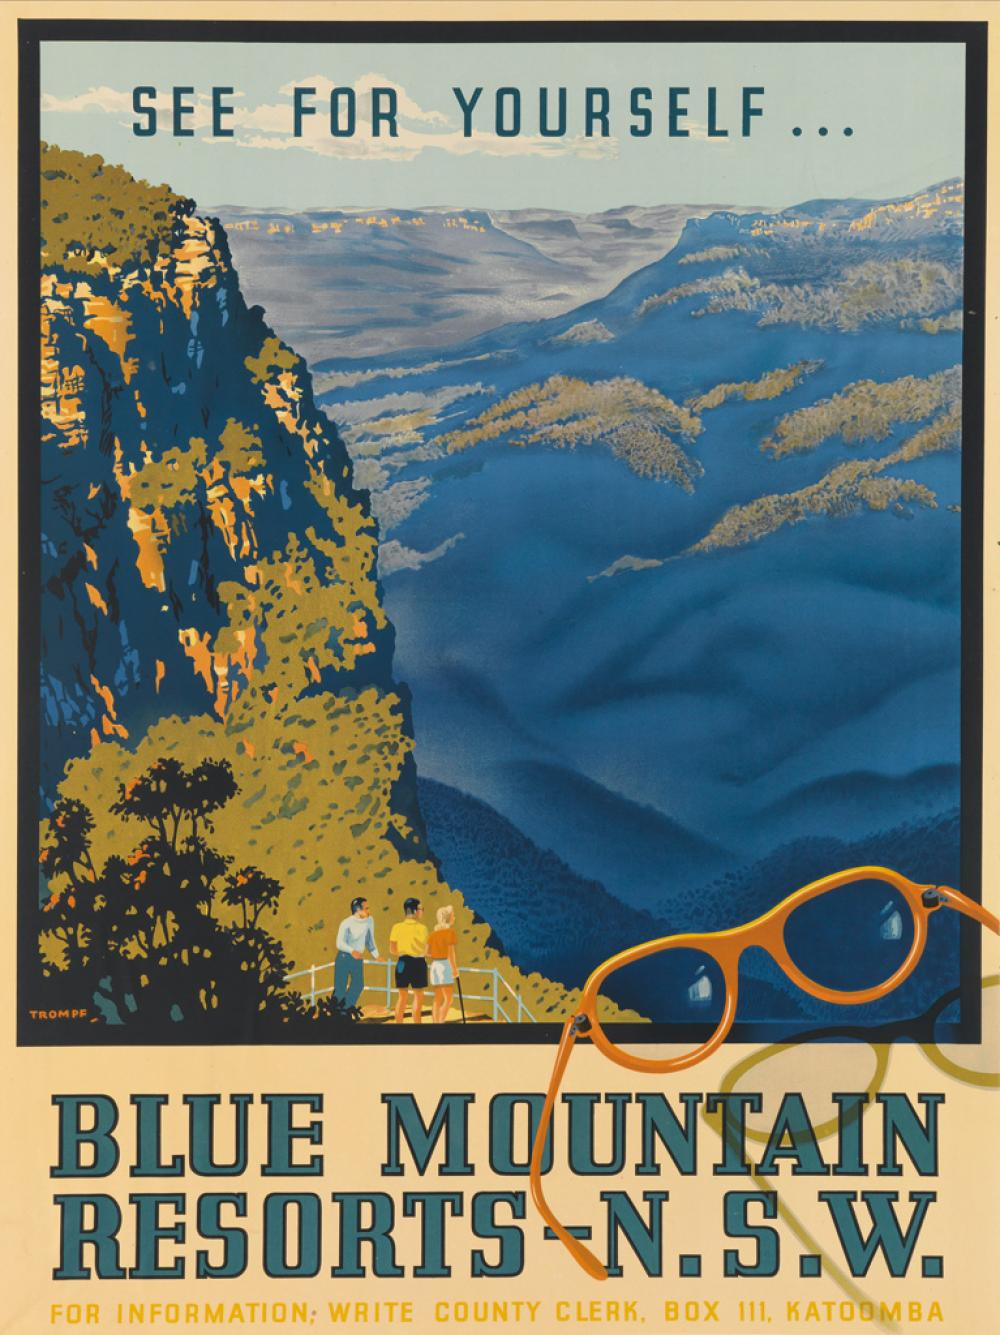 PERCIVAL ALBERT (PERCY) TROMPF (1902-1964). BLUE MOUNTAIN RESORTS - N.S.W. 1946. 39x28 inches, 100x73 cm.